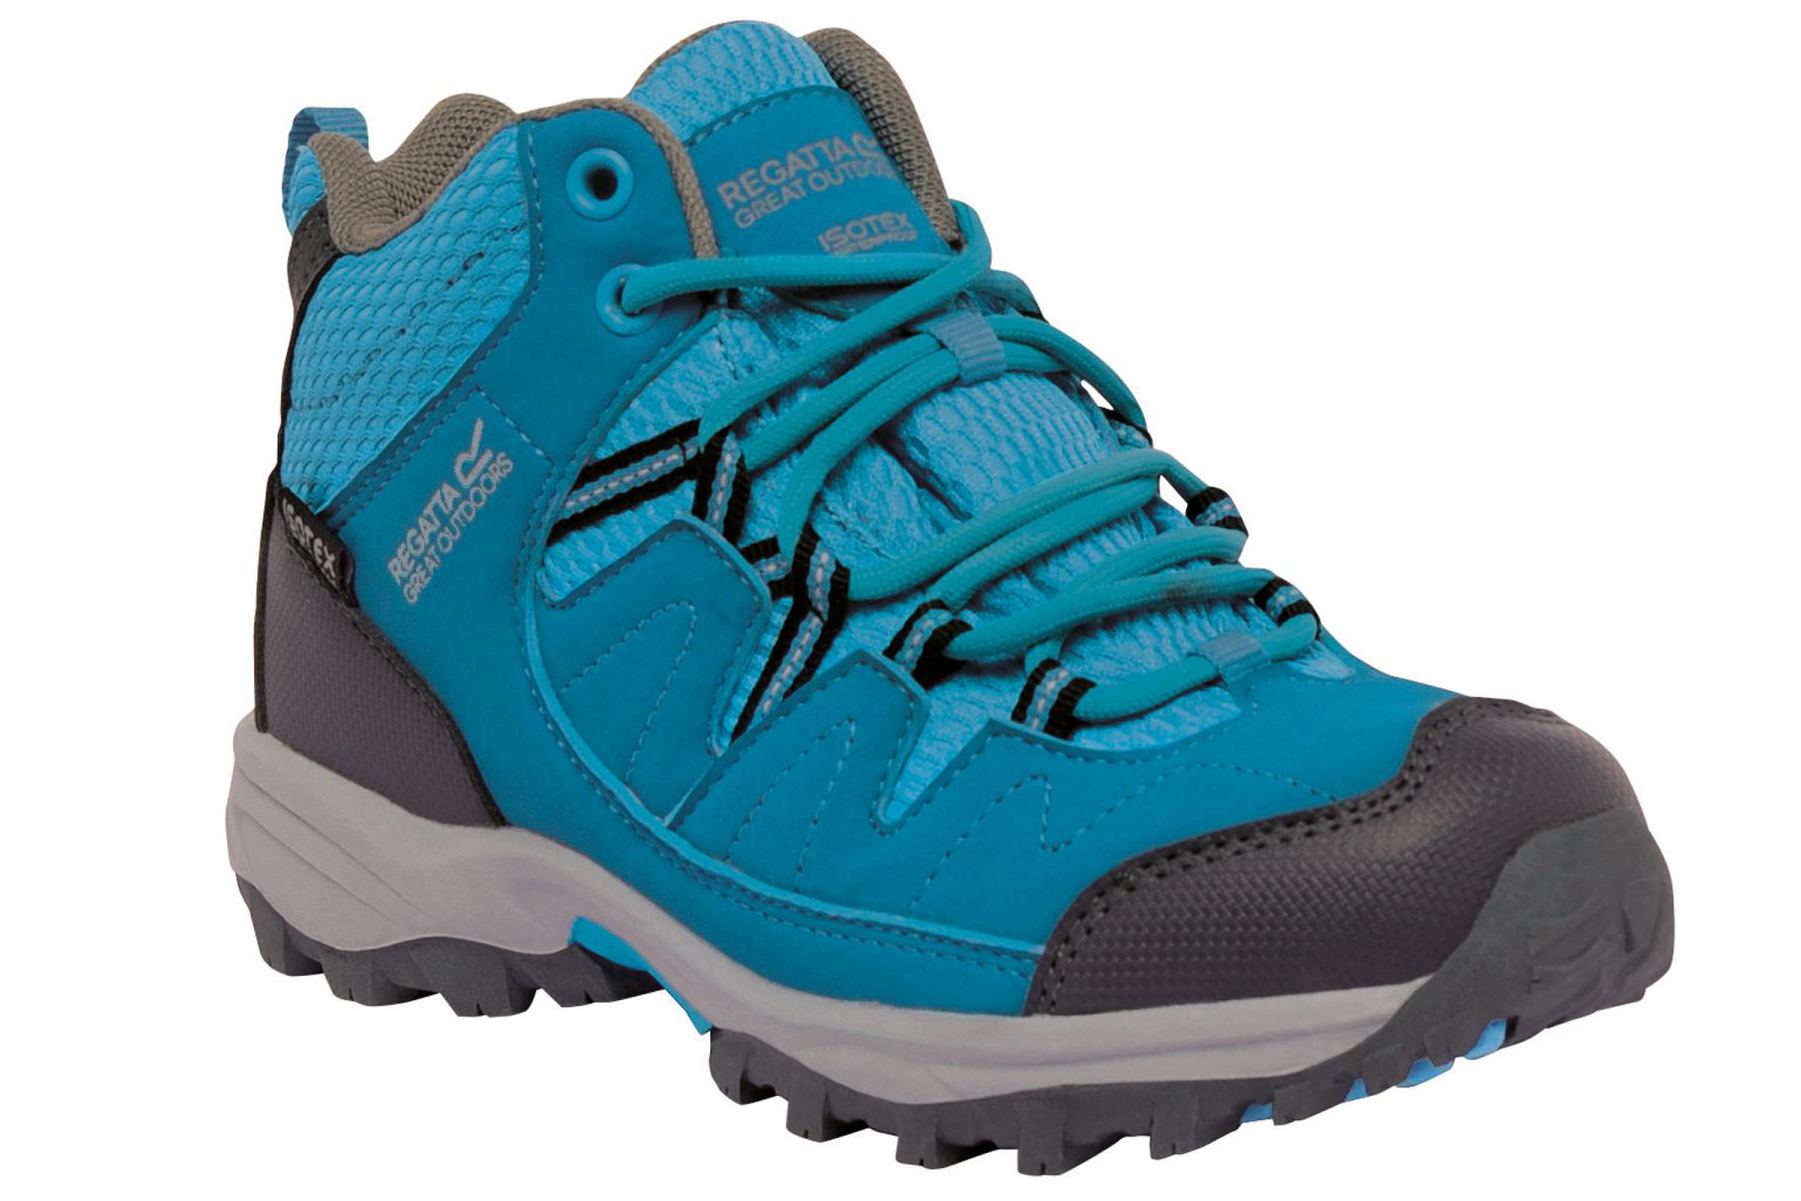 Kids Walking Boots | 6 of the Best for